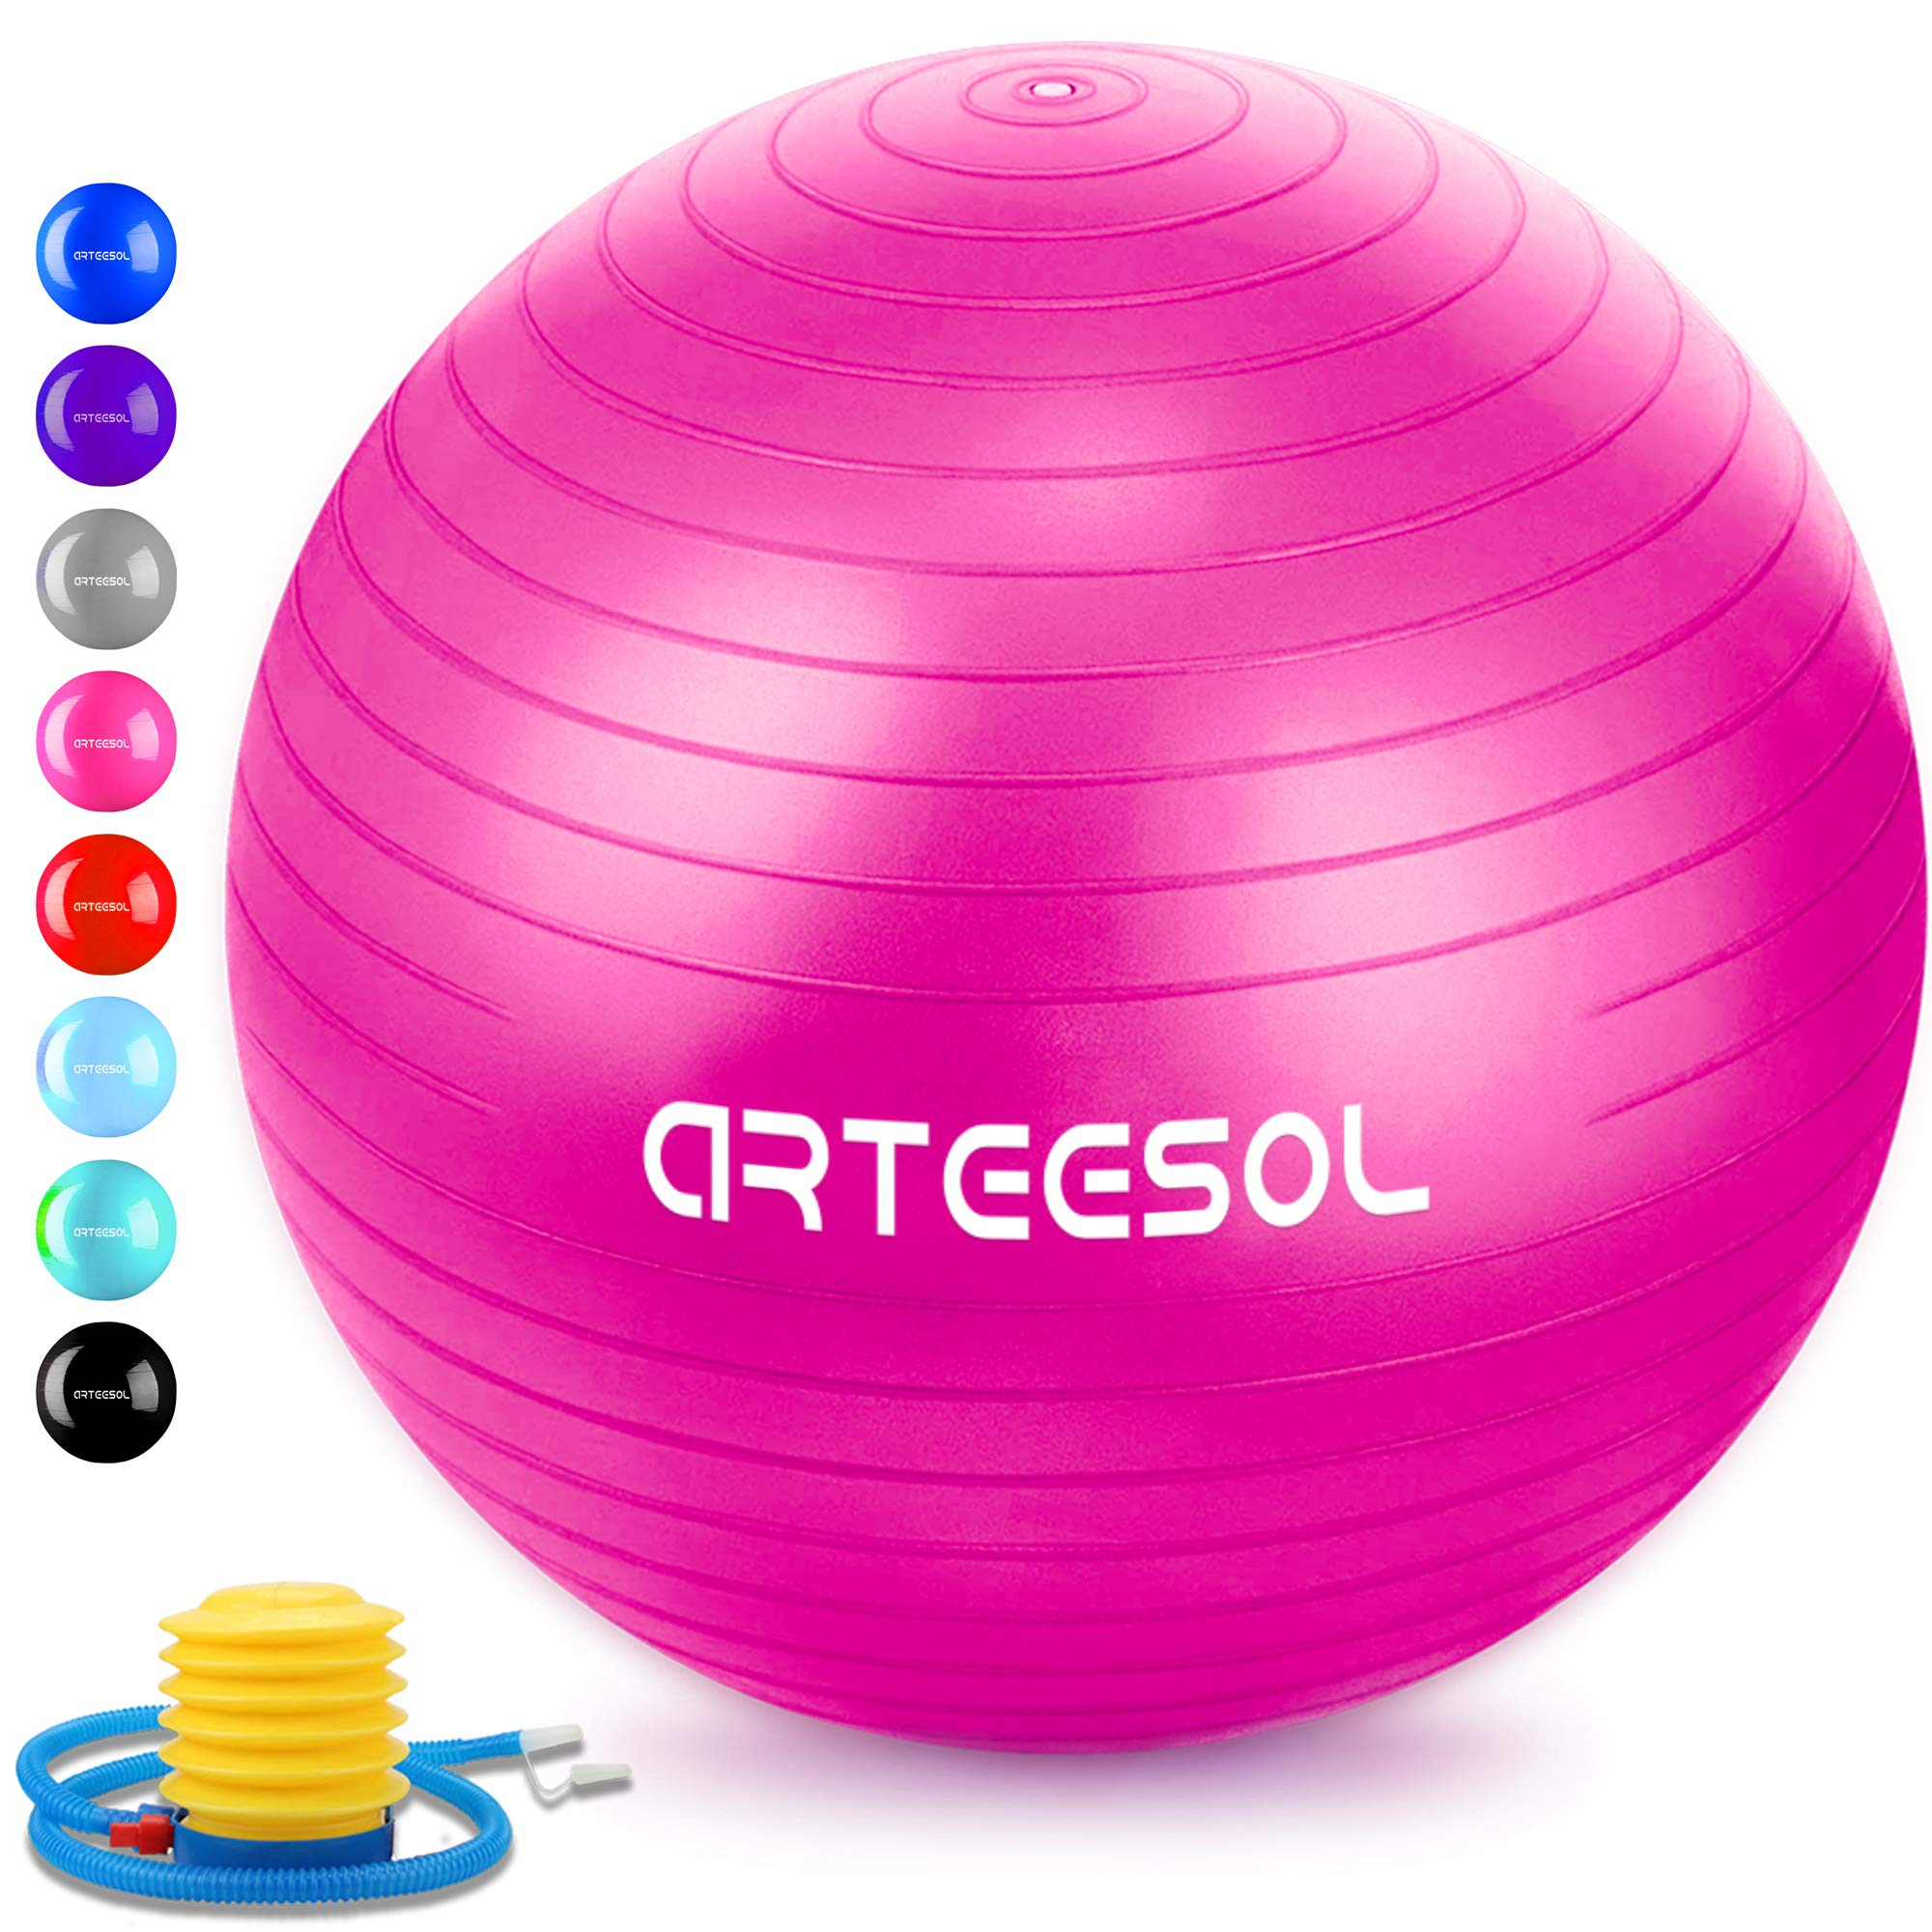 Arteesol Exercise Yoga Ball, Extra Thick Stability Ball Chair(45CM-77CM / 5 Colours), Professional Grade Anti Burst & Slip Resistant Balance, Fitness&Physical Therapy, Birthing Ball with Air Pump by arteesol